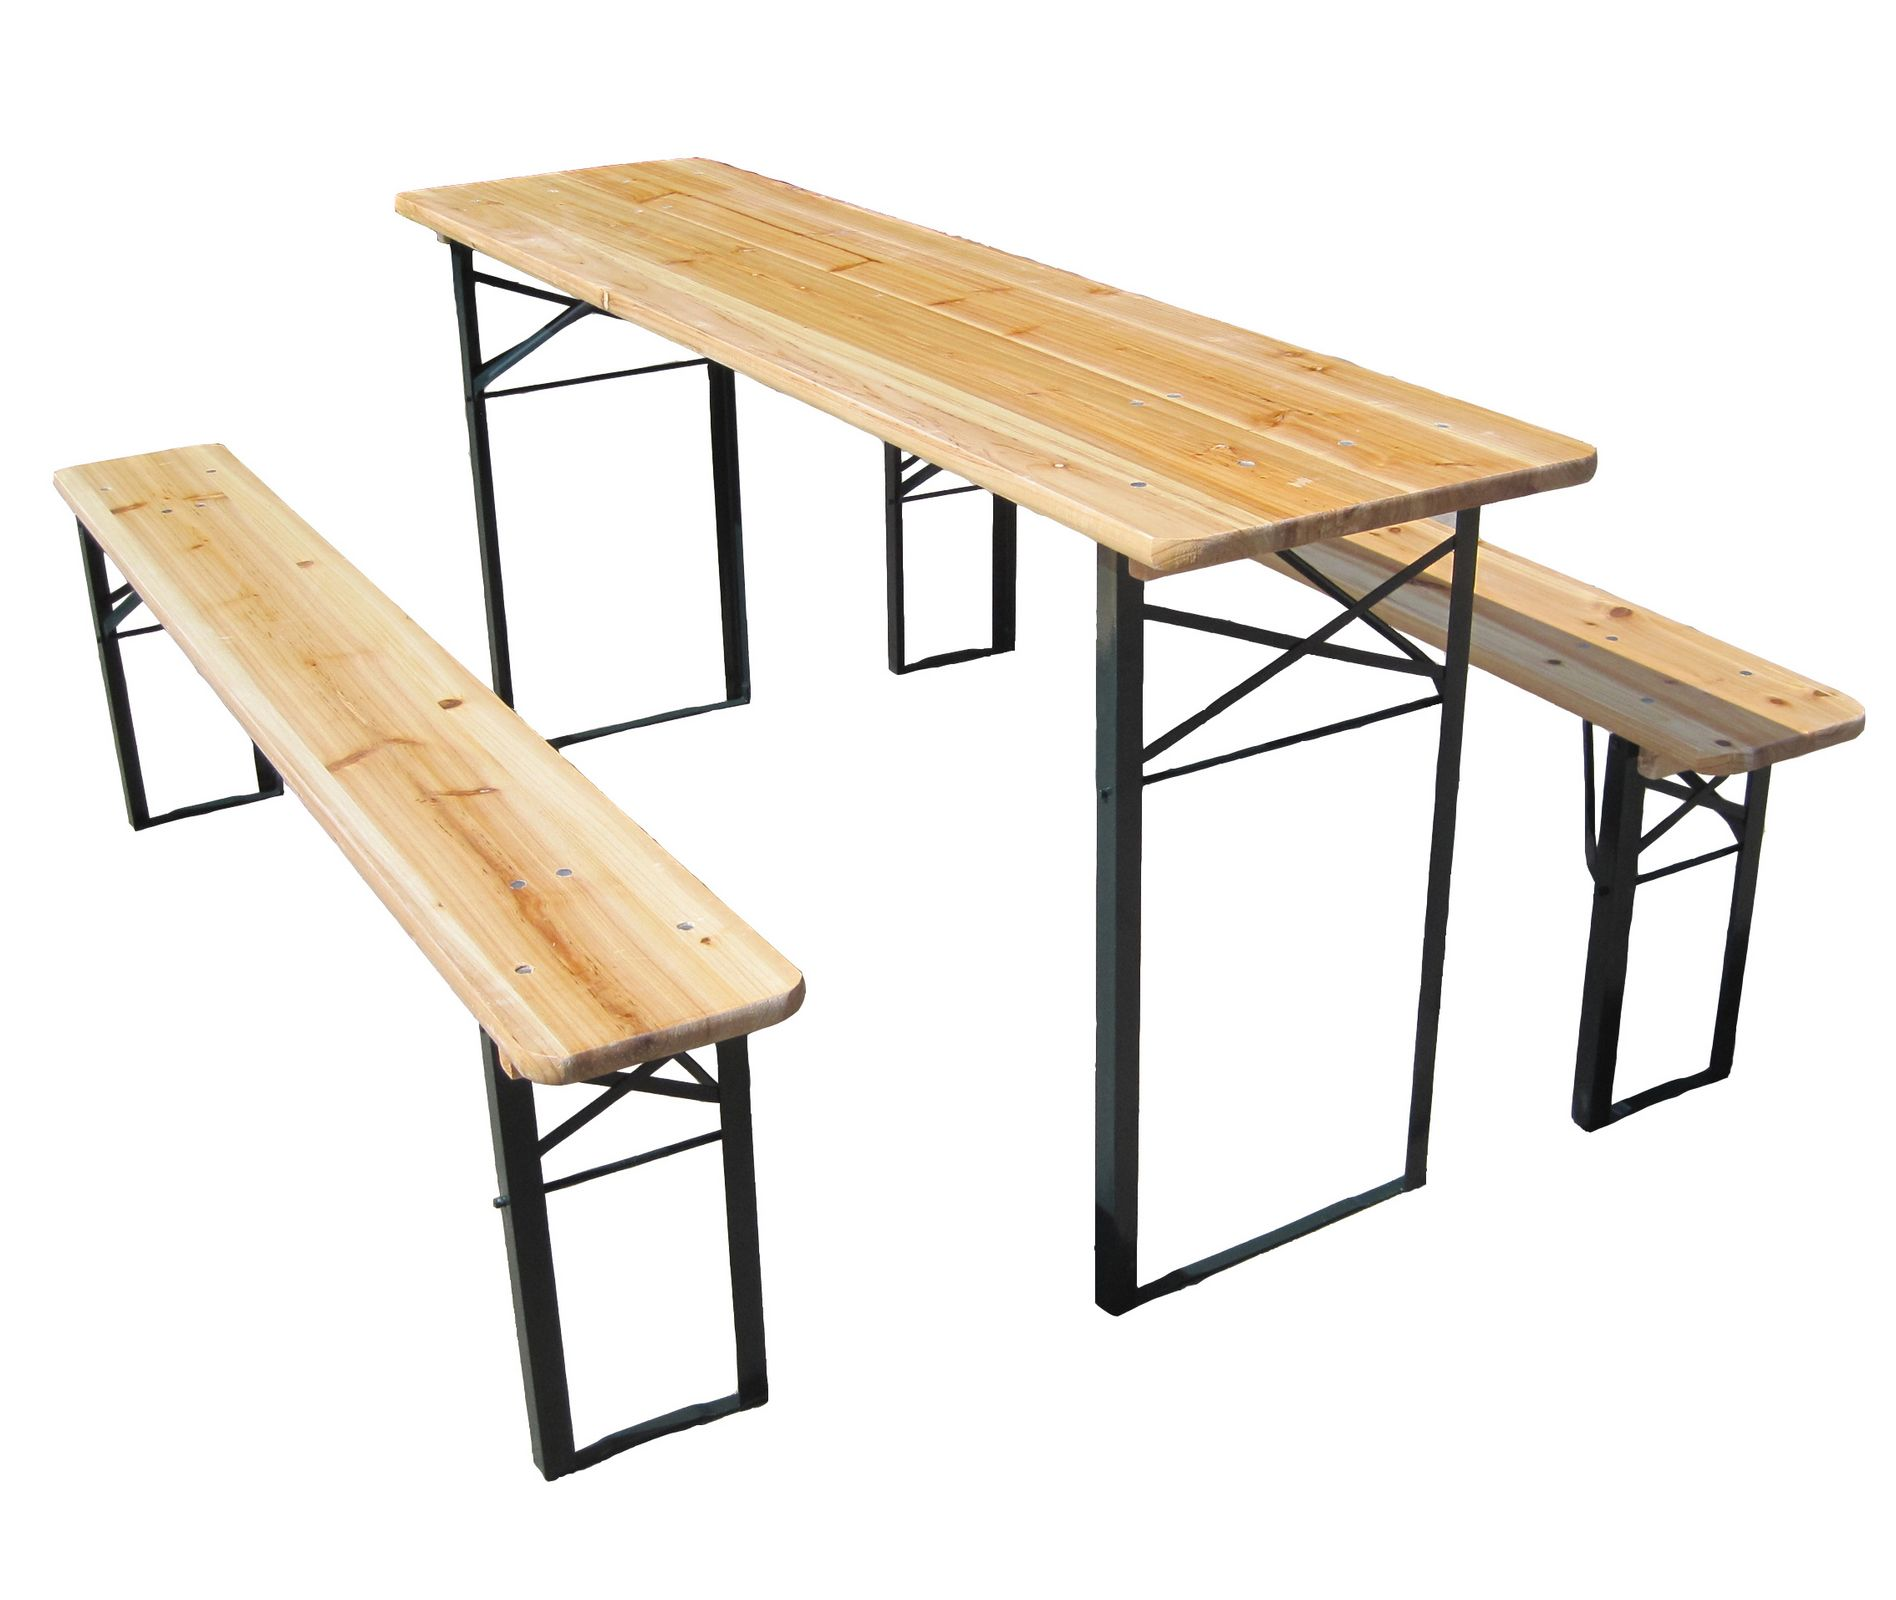 Wooden Folding Table ~ Wooden folding beer table bench set trestle party pub